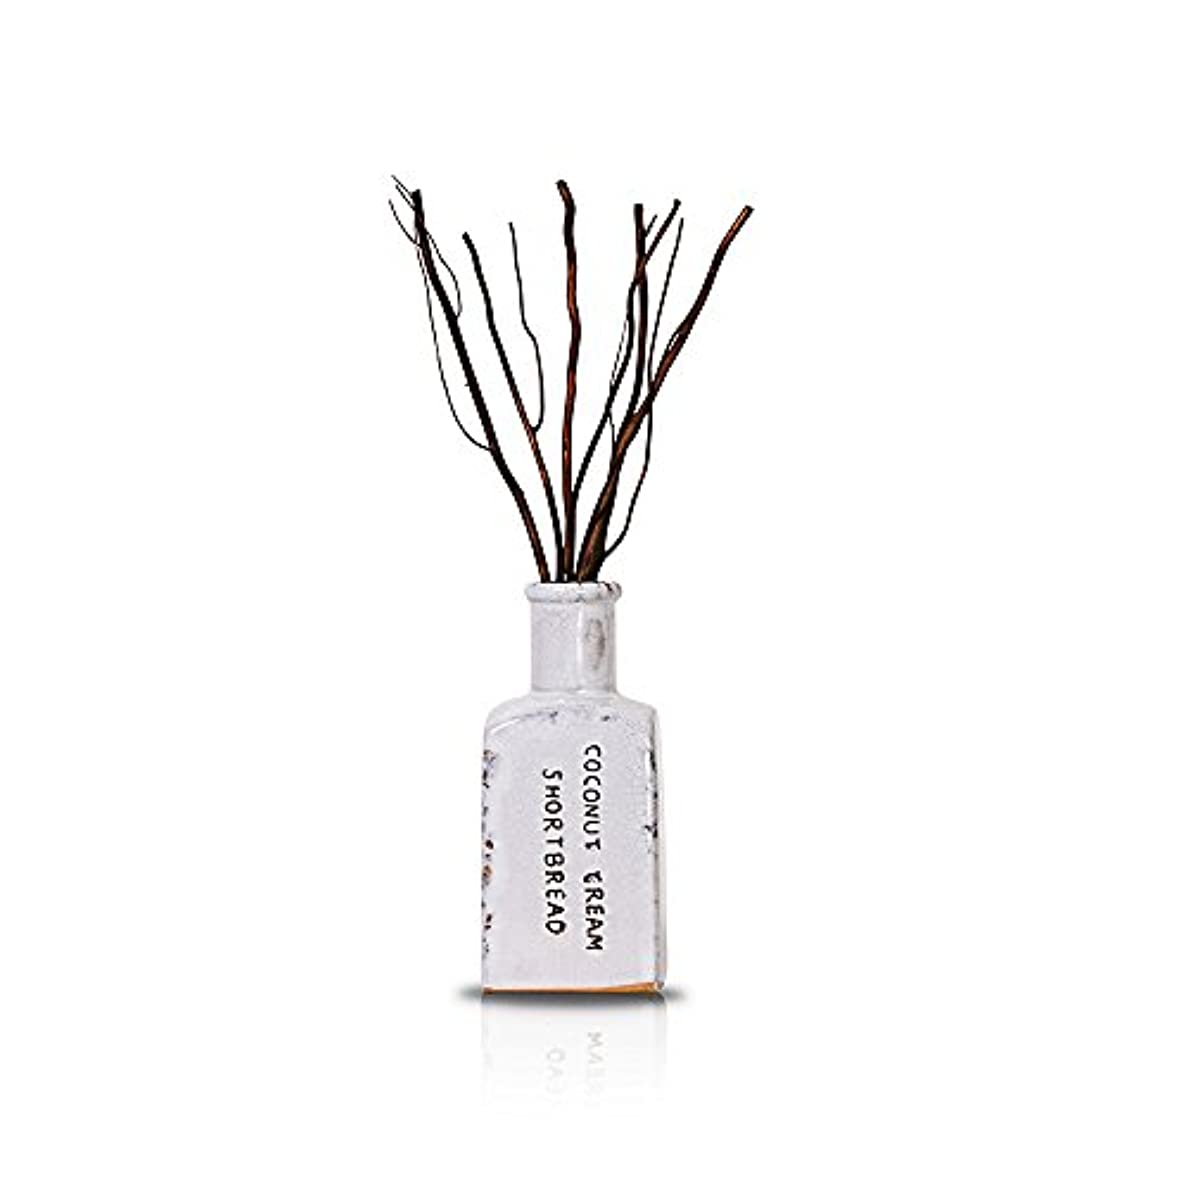 mercyu(メルシーユー) VINTAGE collection Reed Diffuser Vintage MRU-20V (WTG(ホワイトティー&ジンジャーズ))